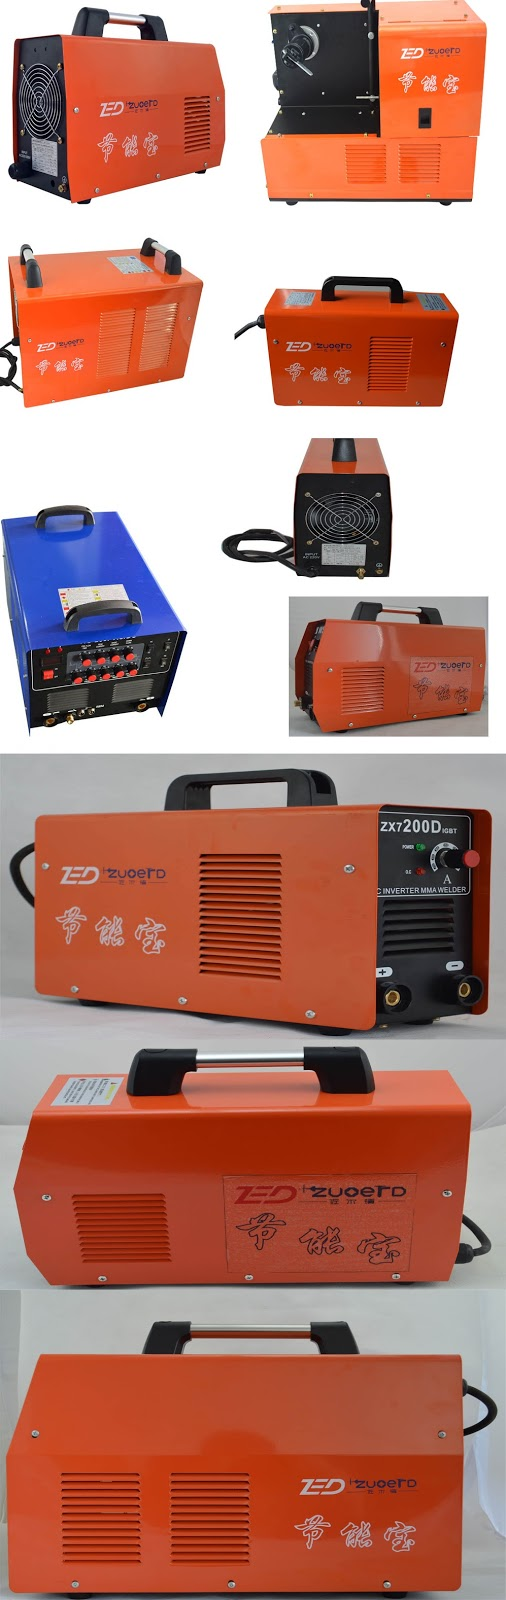 Hand Tools Electric Power Mos Dc Inverter Tig Welder Igbt Gas Circuit Transistor Likewise Motor Drive On Shielded Welding Machine Air Plasma Cutting Manual Arc